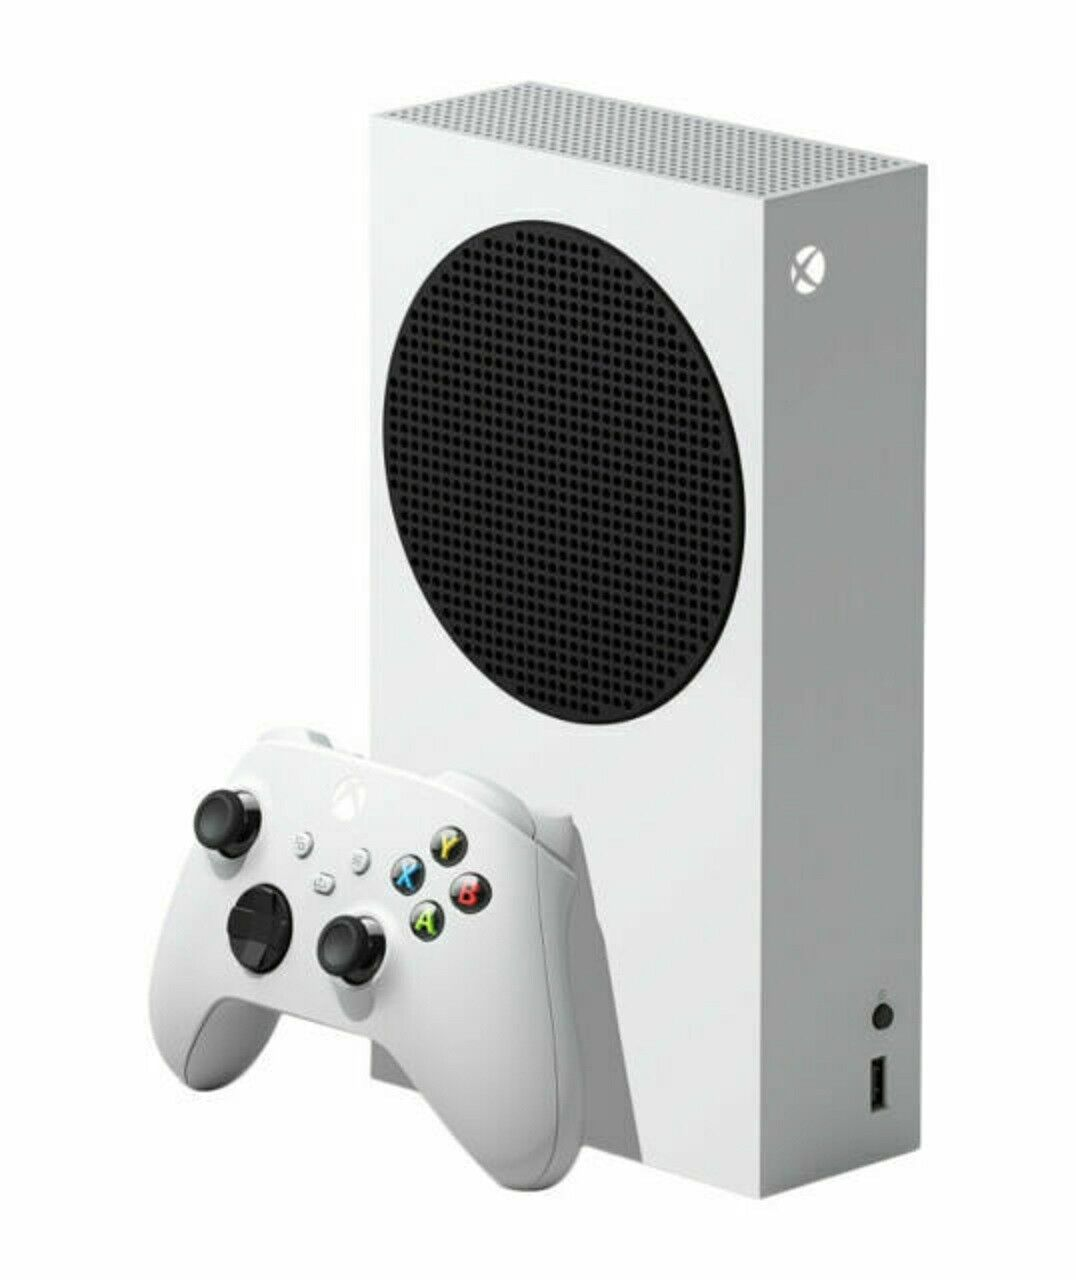 Microsoft Xbox Series S 512GB Video Game Console - White. Used on eBay thumbnail